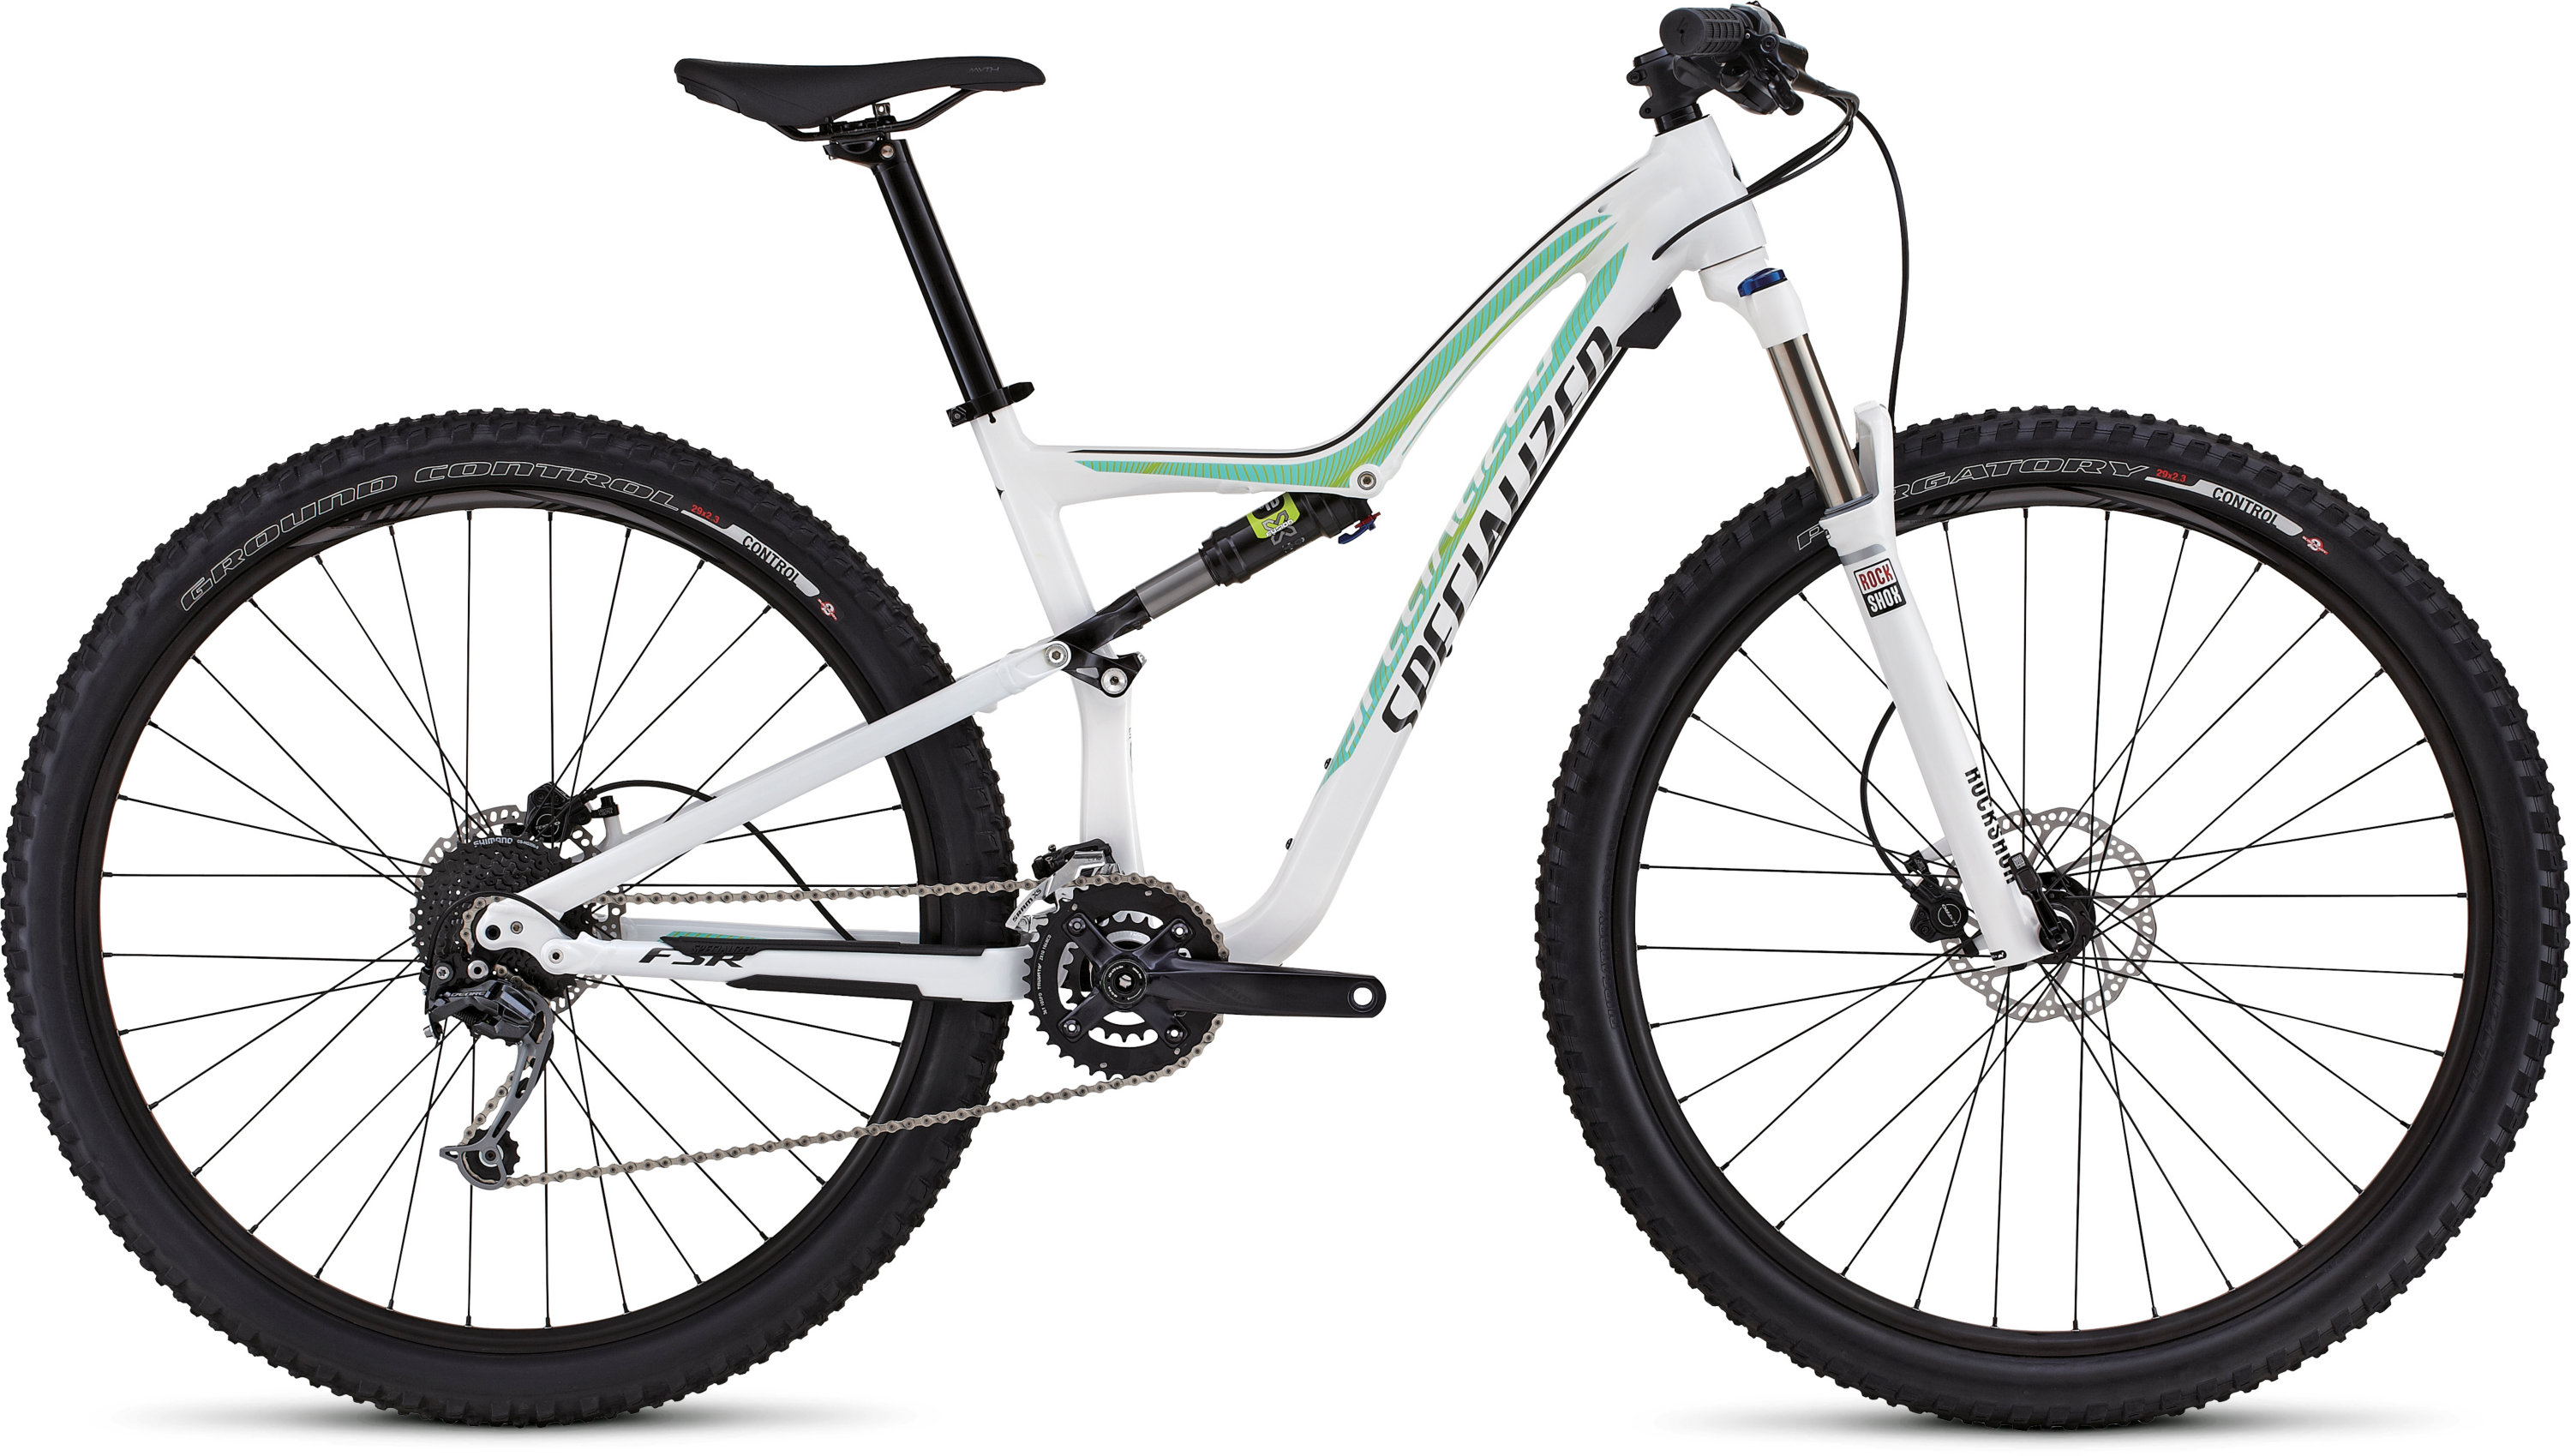 SPECIALIZED RUMOR FSR 29 WHT/CHAR/HYP S - schneider-sports